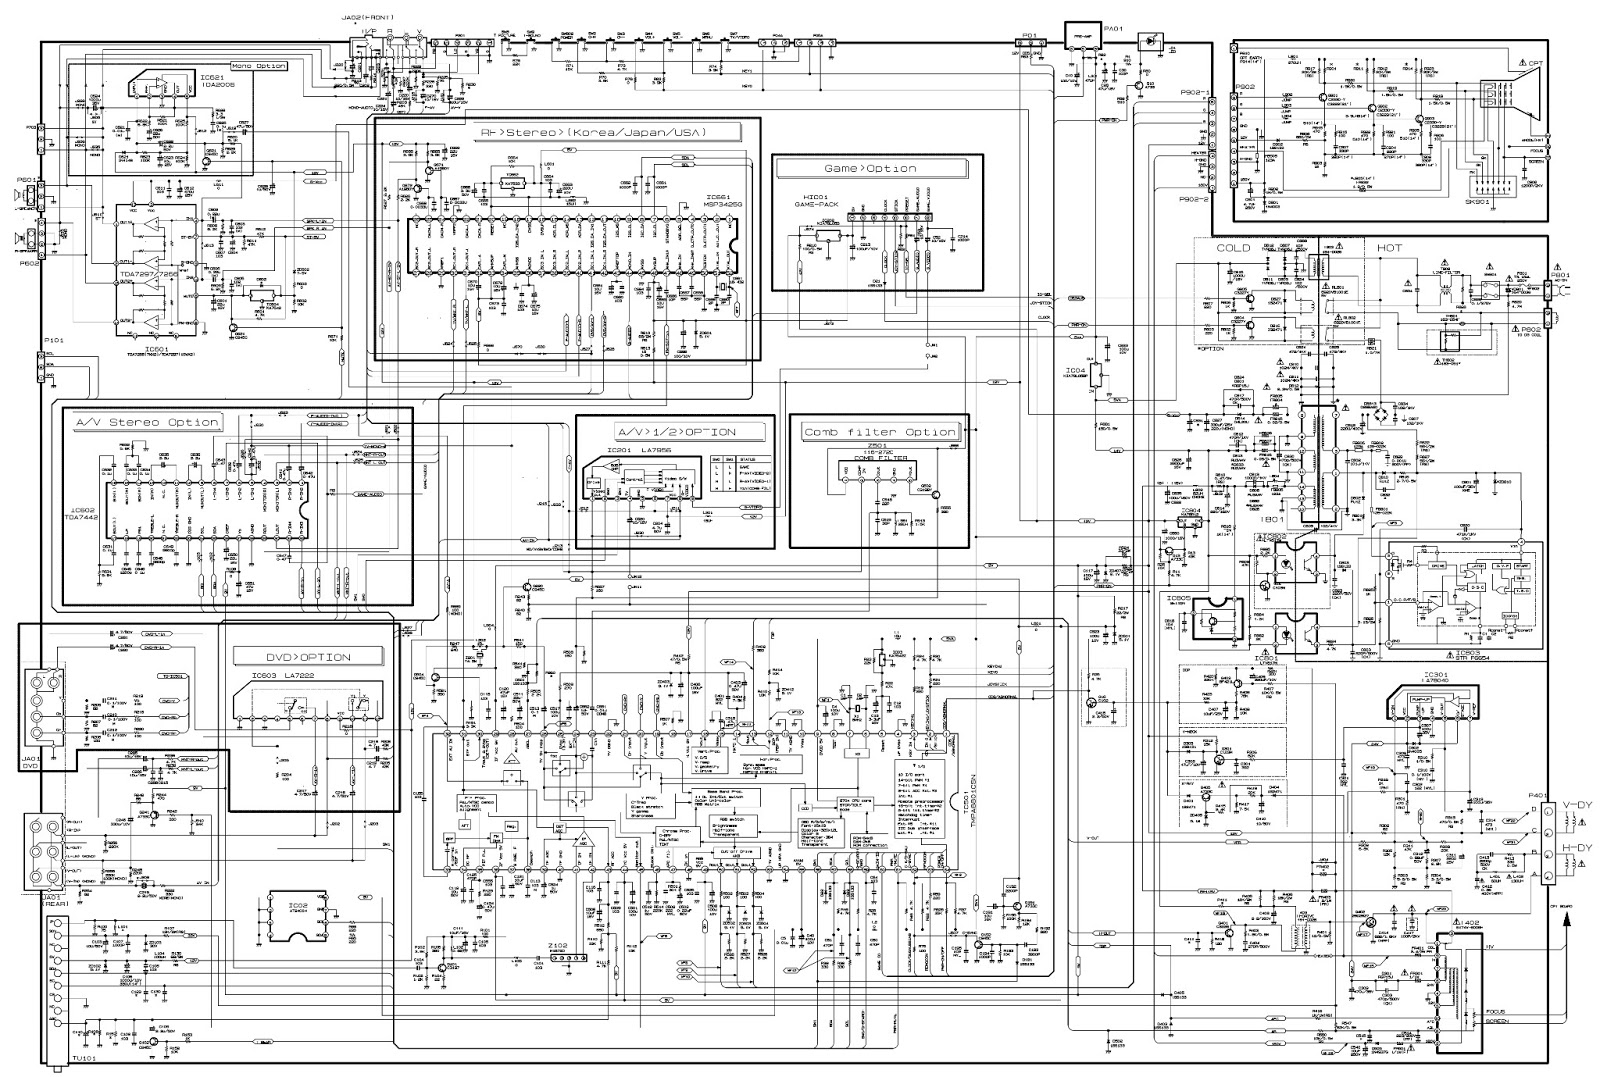 basic oven wiring diagram free picture schematic best wiring library Electronic Circuit Diagram Software Free lg tv diagram control wiring diagram \\u2022 computer monitor diagram crt tv wiring diagram puter wiring diagram free picture schematic